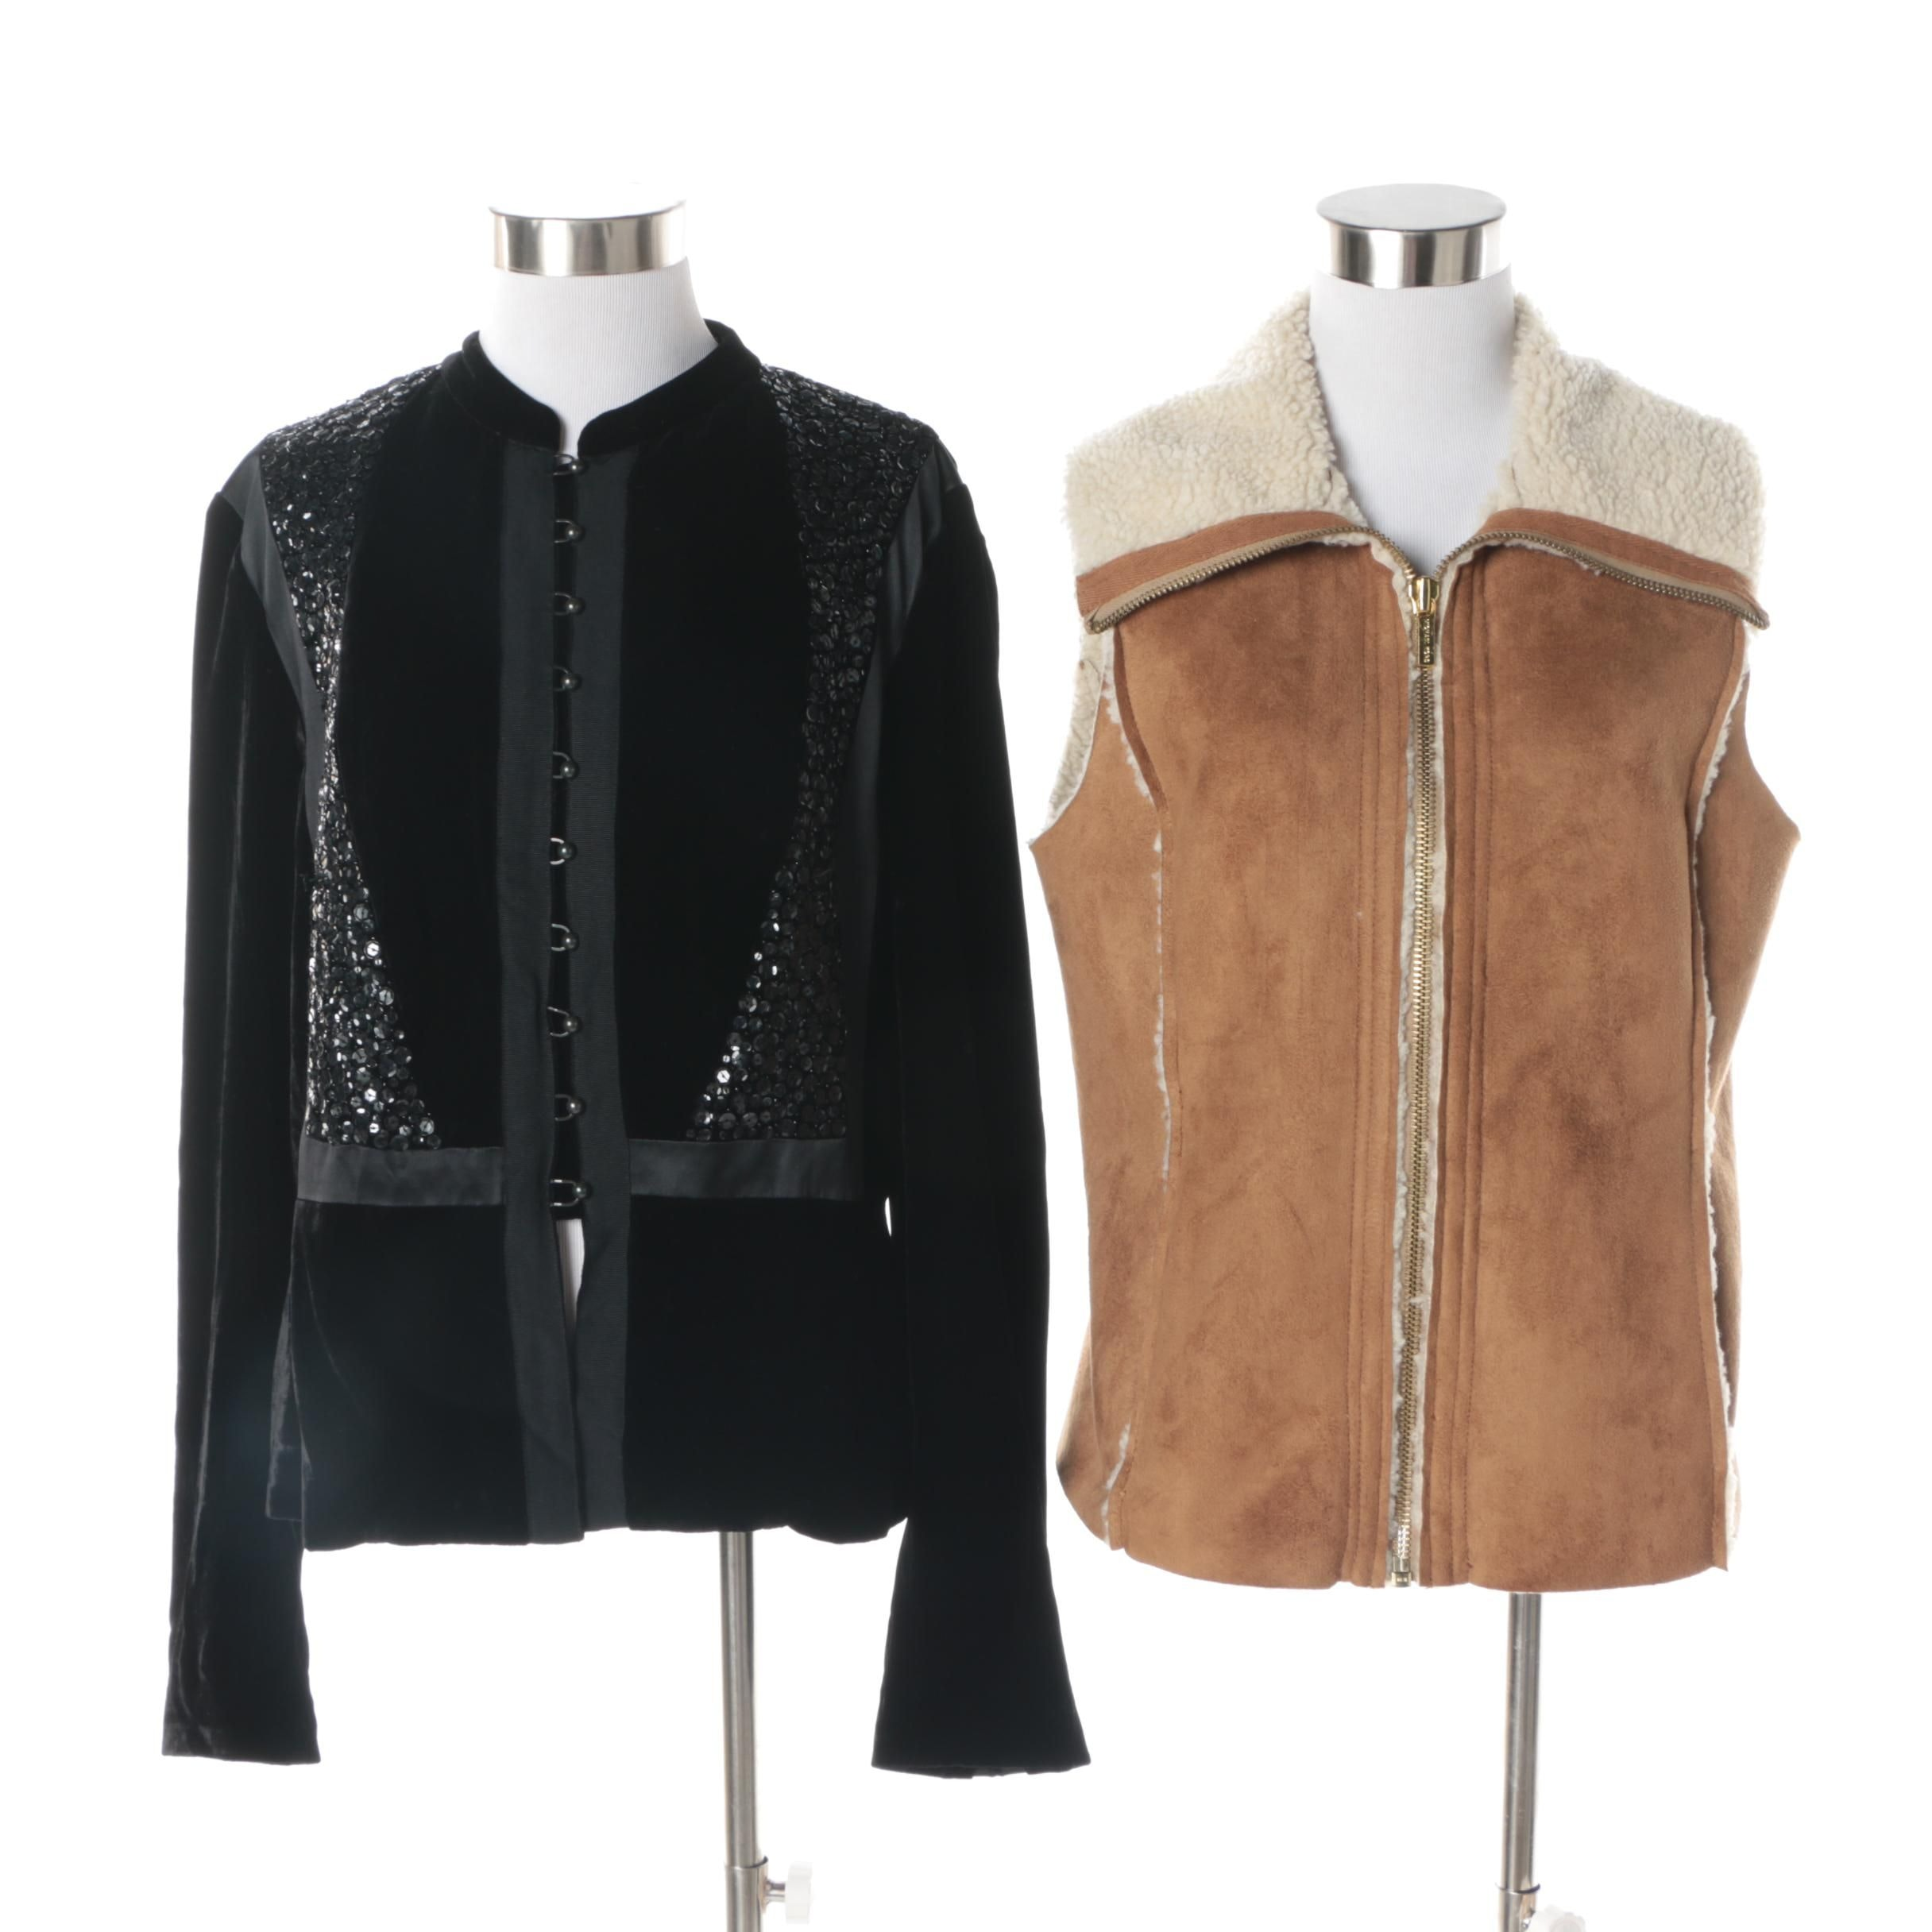 Women's MICHAEL Michael Kors Faux Shearling Vest and Calvin Klein Sequin Jacket